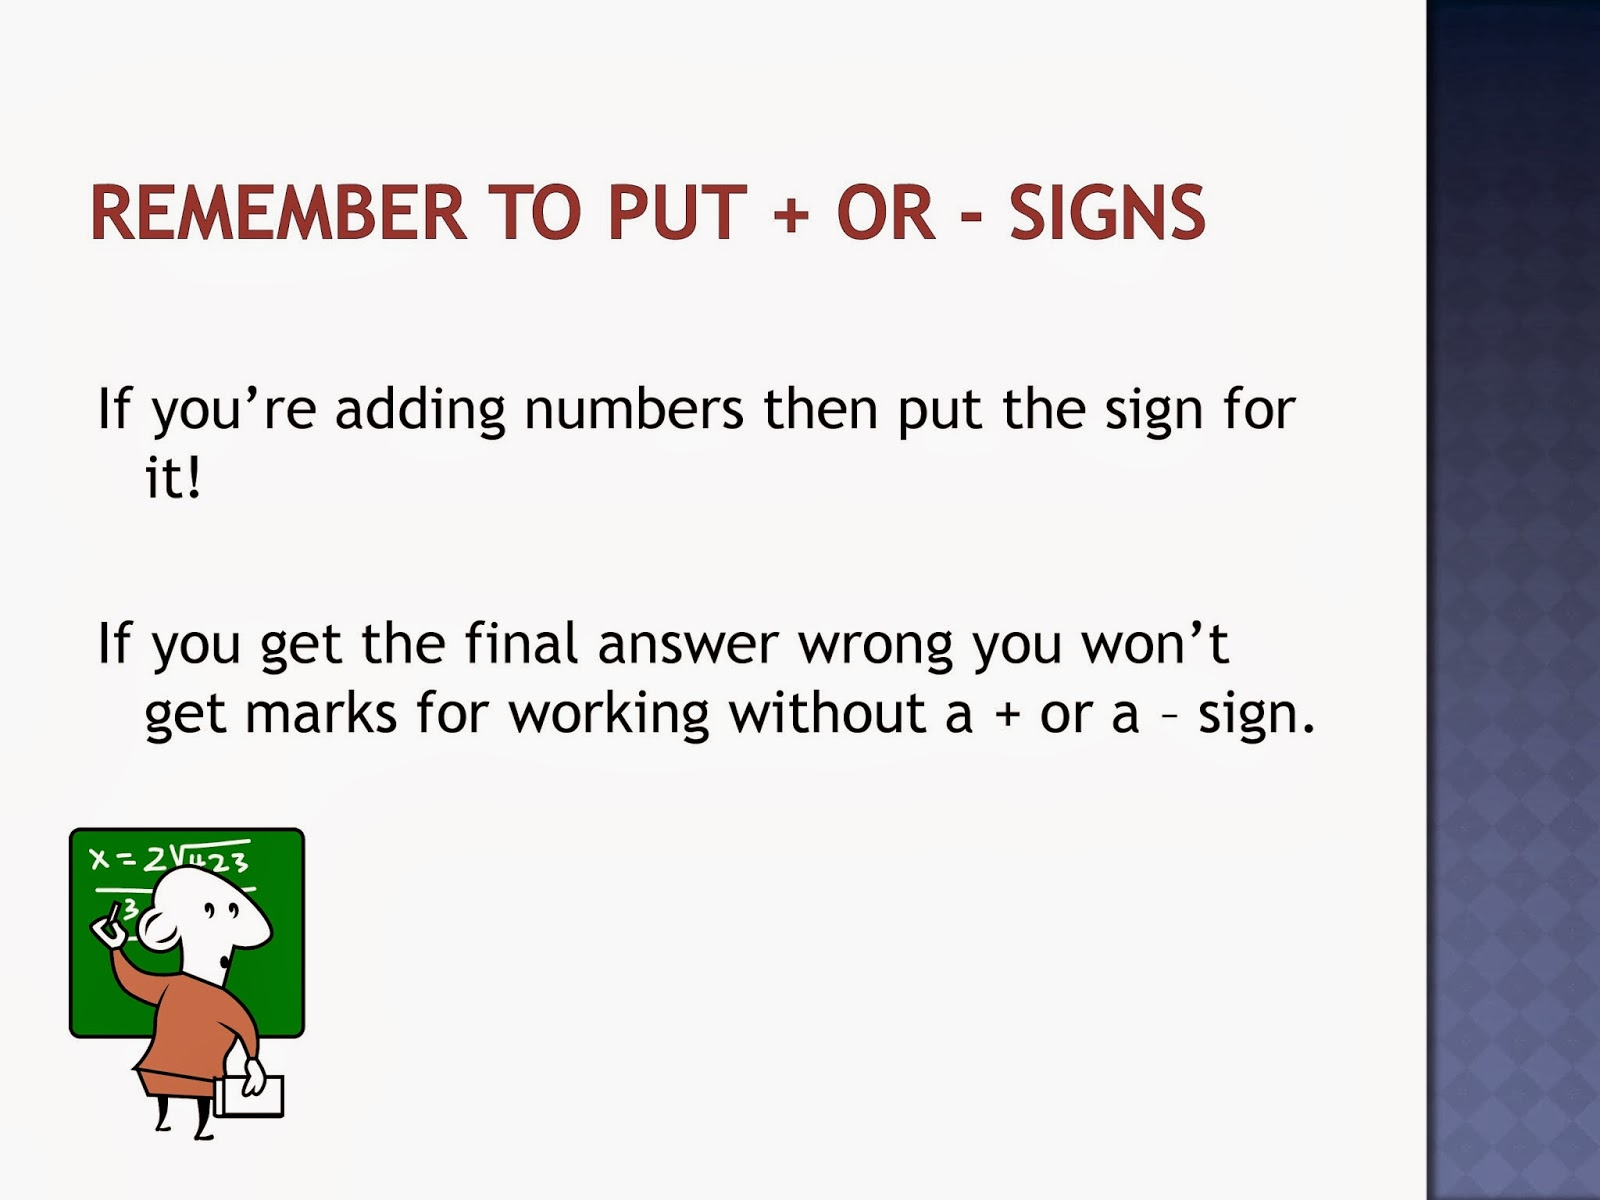 Gcse Maths Easy Ways To Make Sure You on Posters For Bodmas Bidmas Misconception